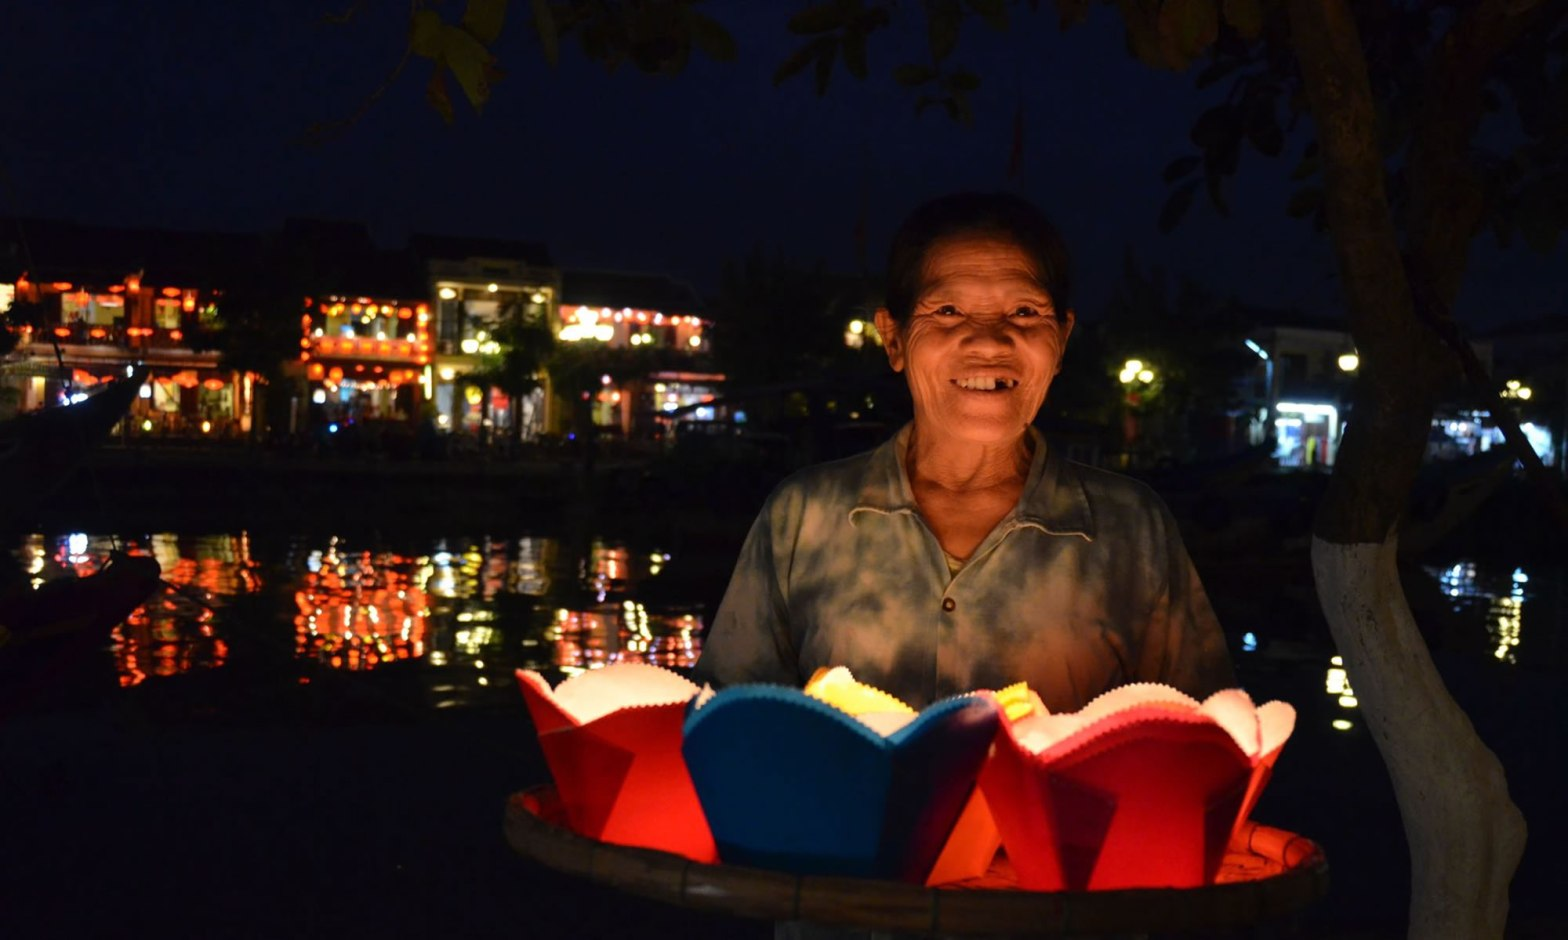 A woman holds a tray of red and blue paper lanterns for sale, in Hoi An, Vietnam.